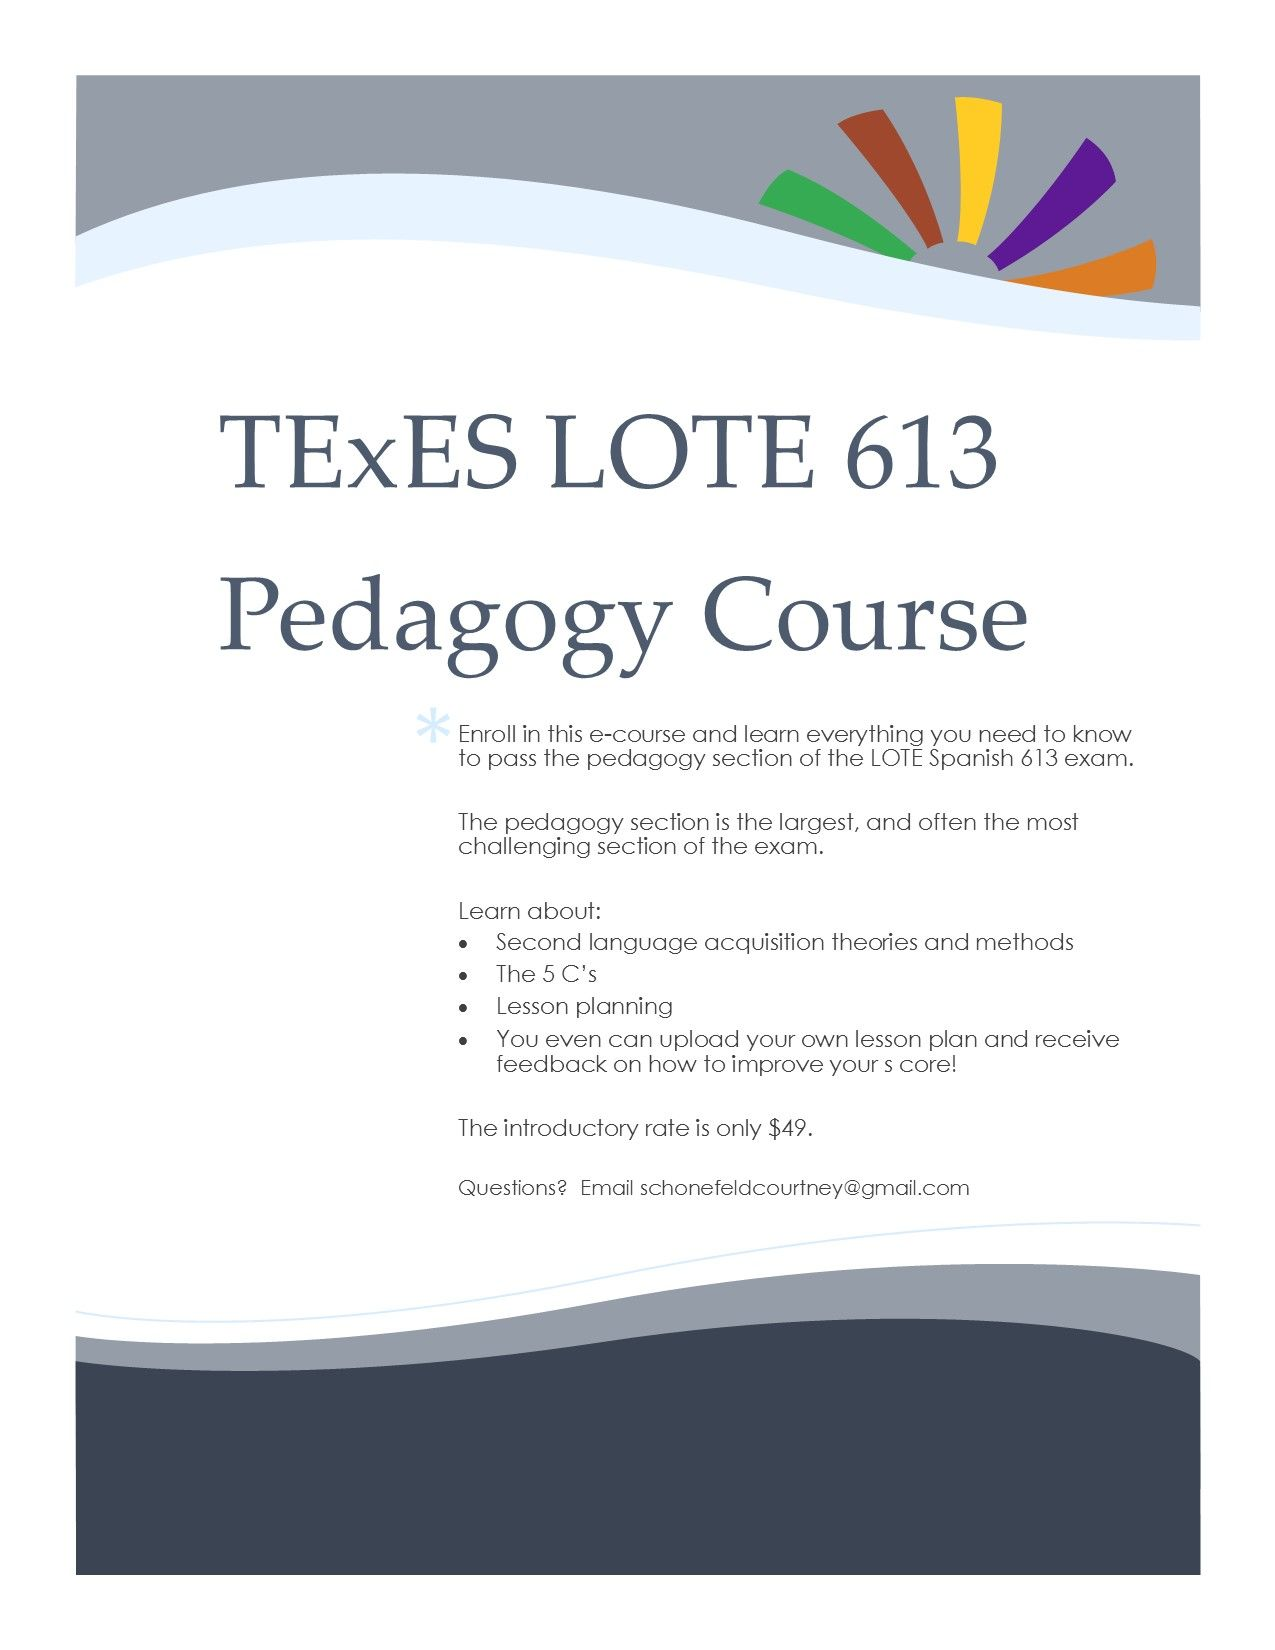 E-course to help you pass the pedagogy section of the  TExES LOTE Spanish  613 exam.